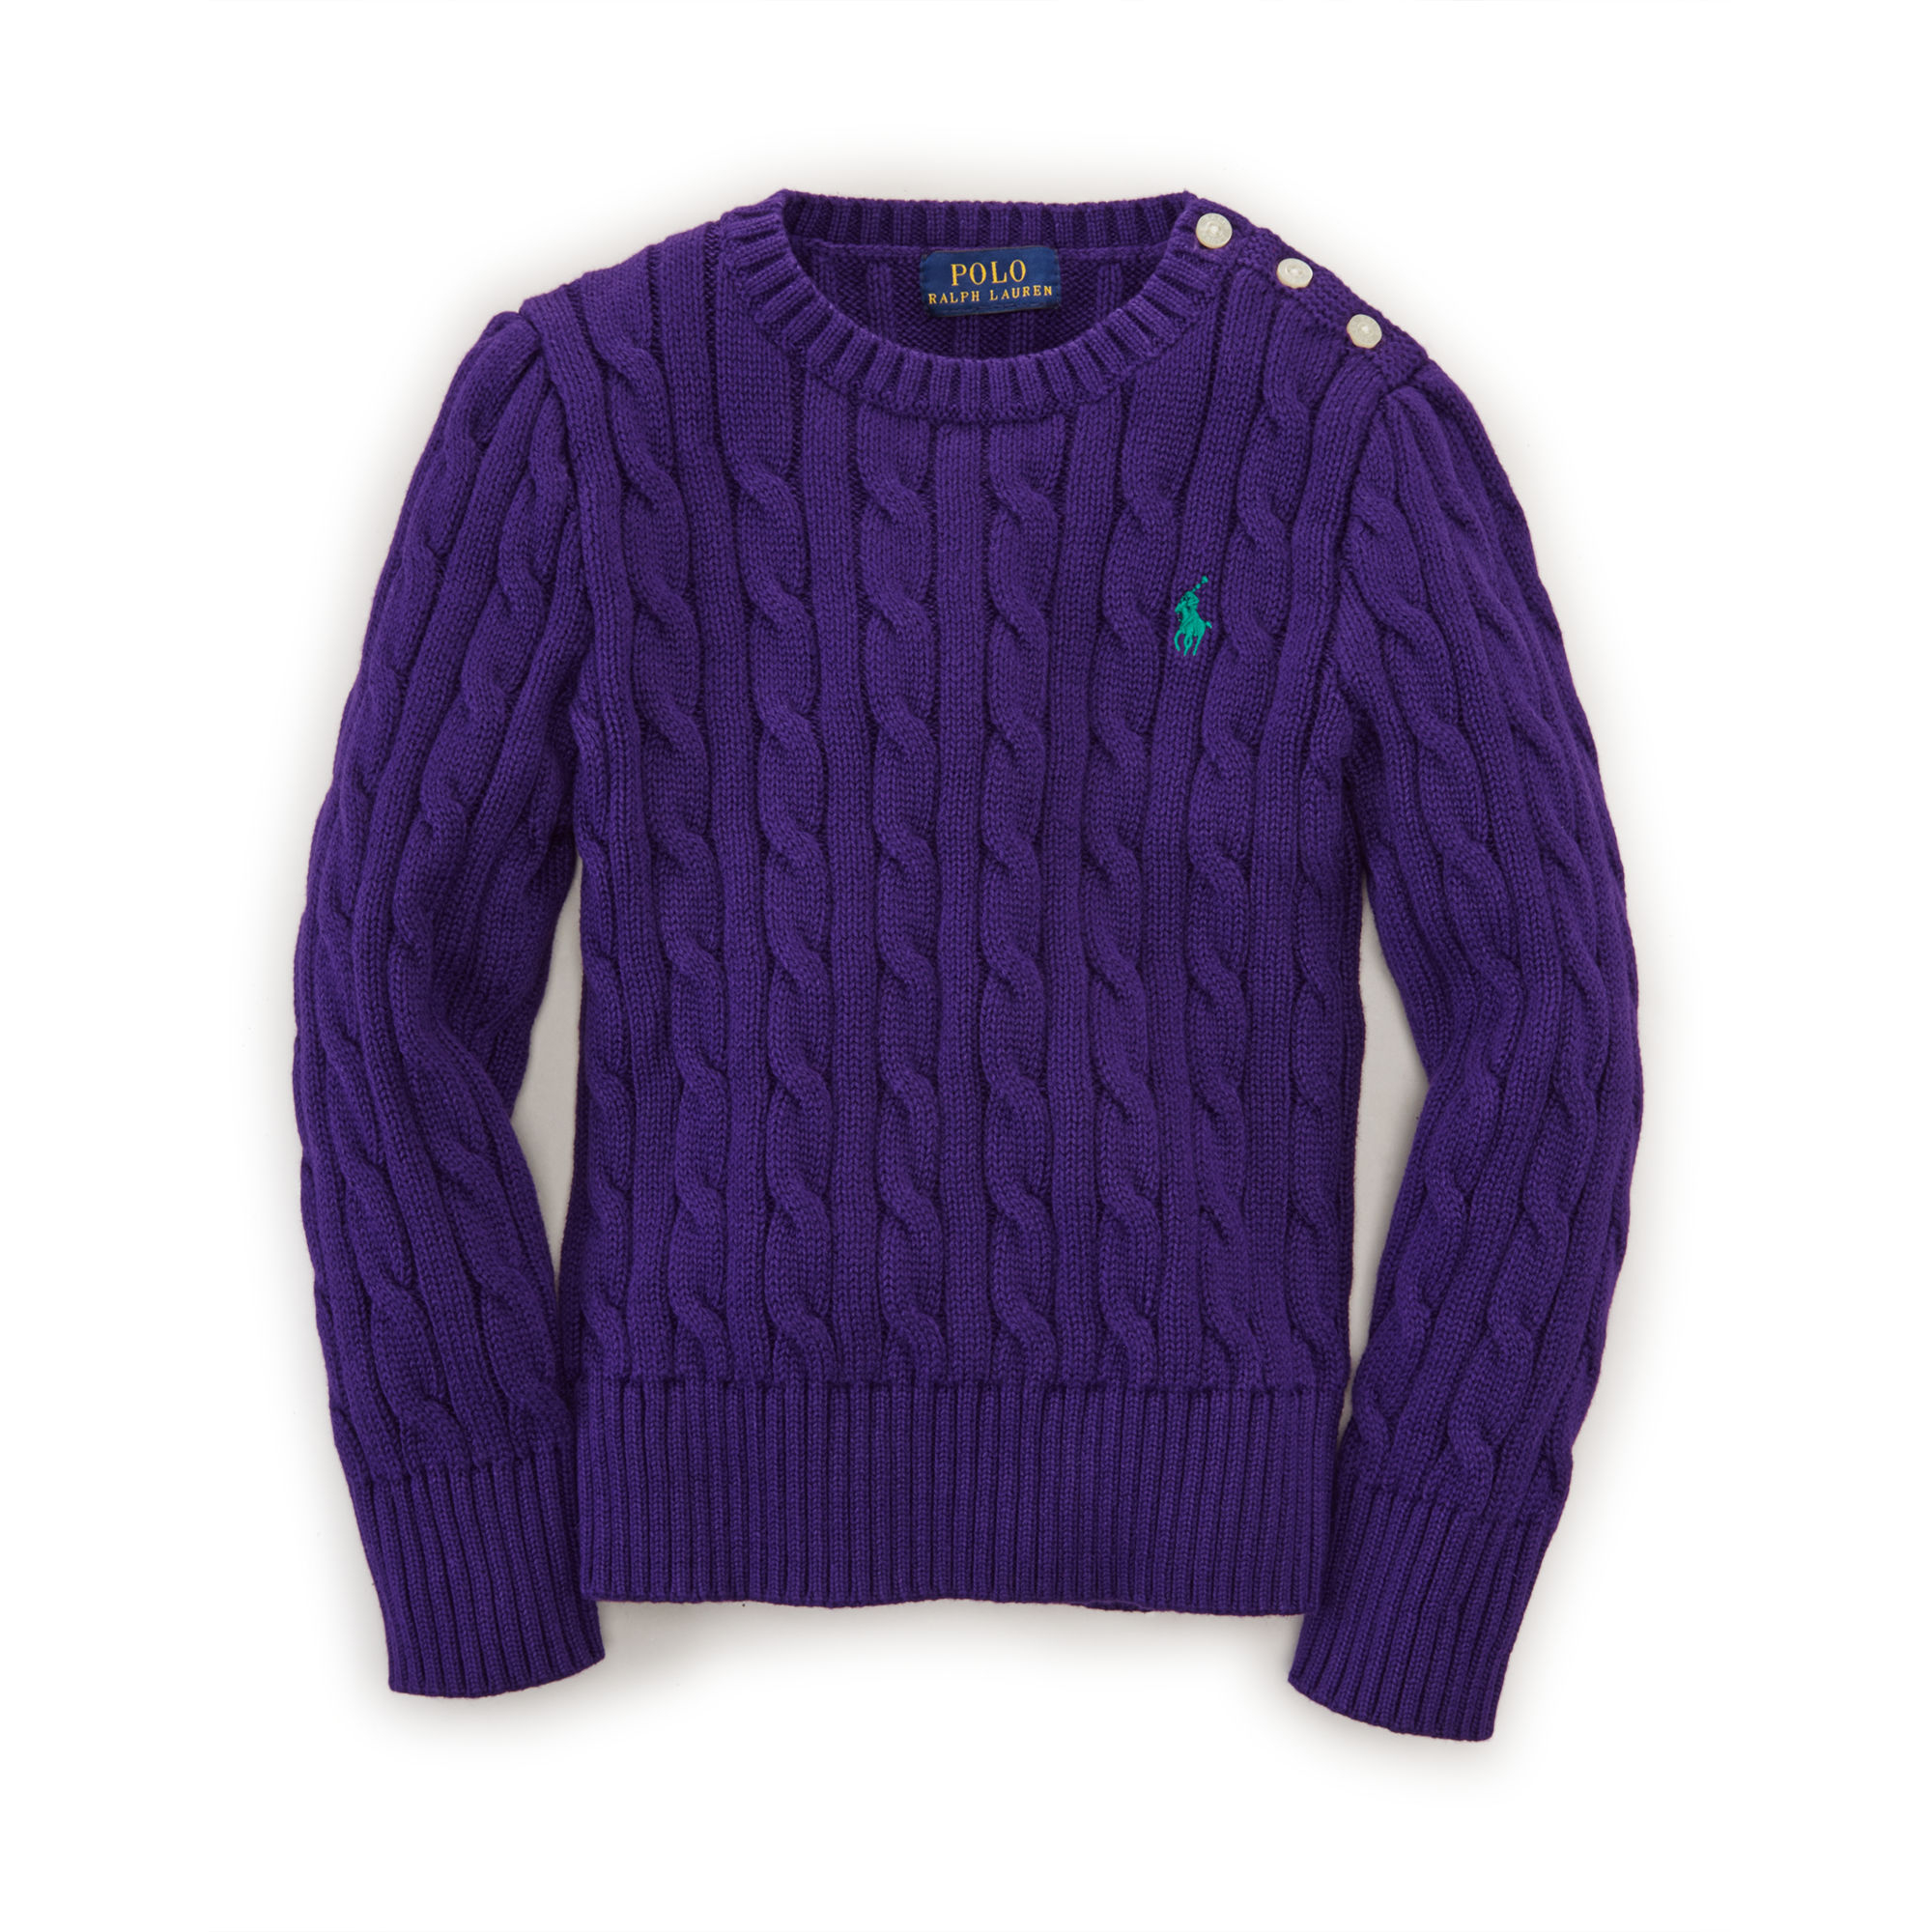 Ralph lauren Cable-knit Cotton Sweater in Purple | Lyst